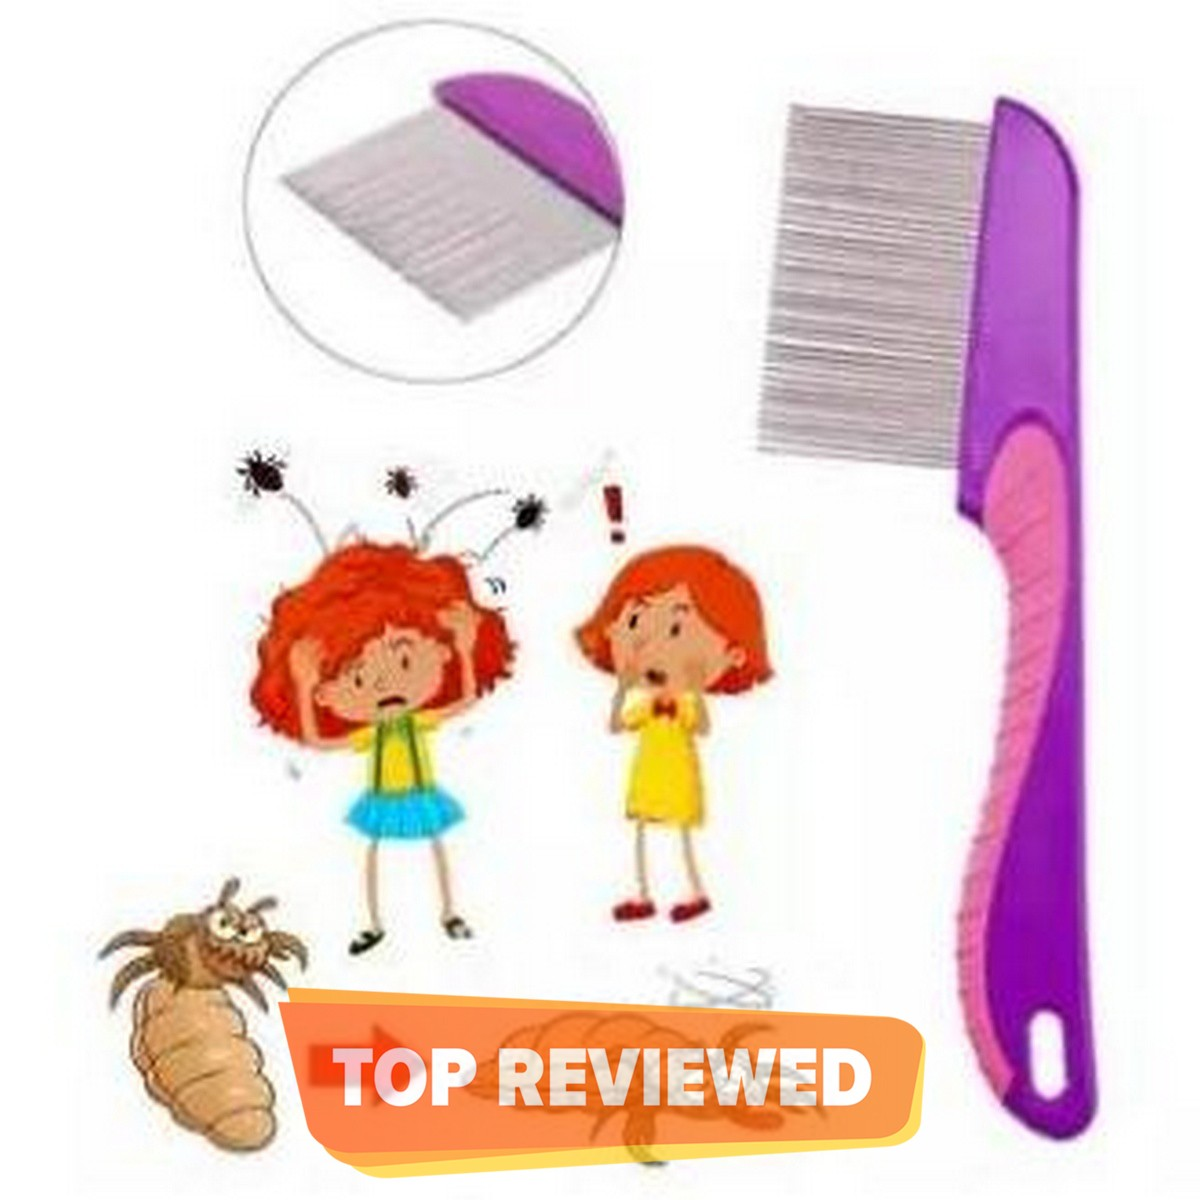 100% Stainless Steel Needles Manual Anti Lice Comb Metal Needles For Men Women Comb